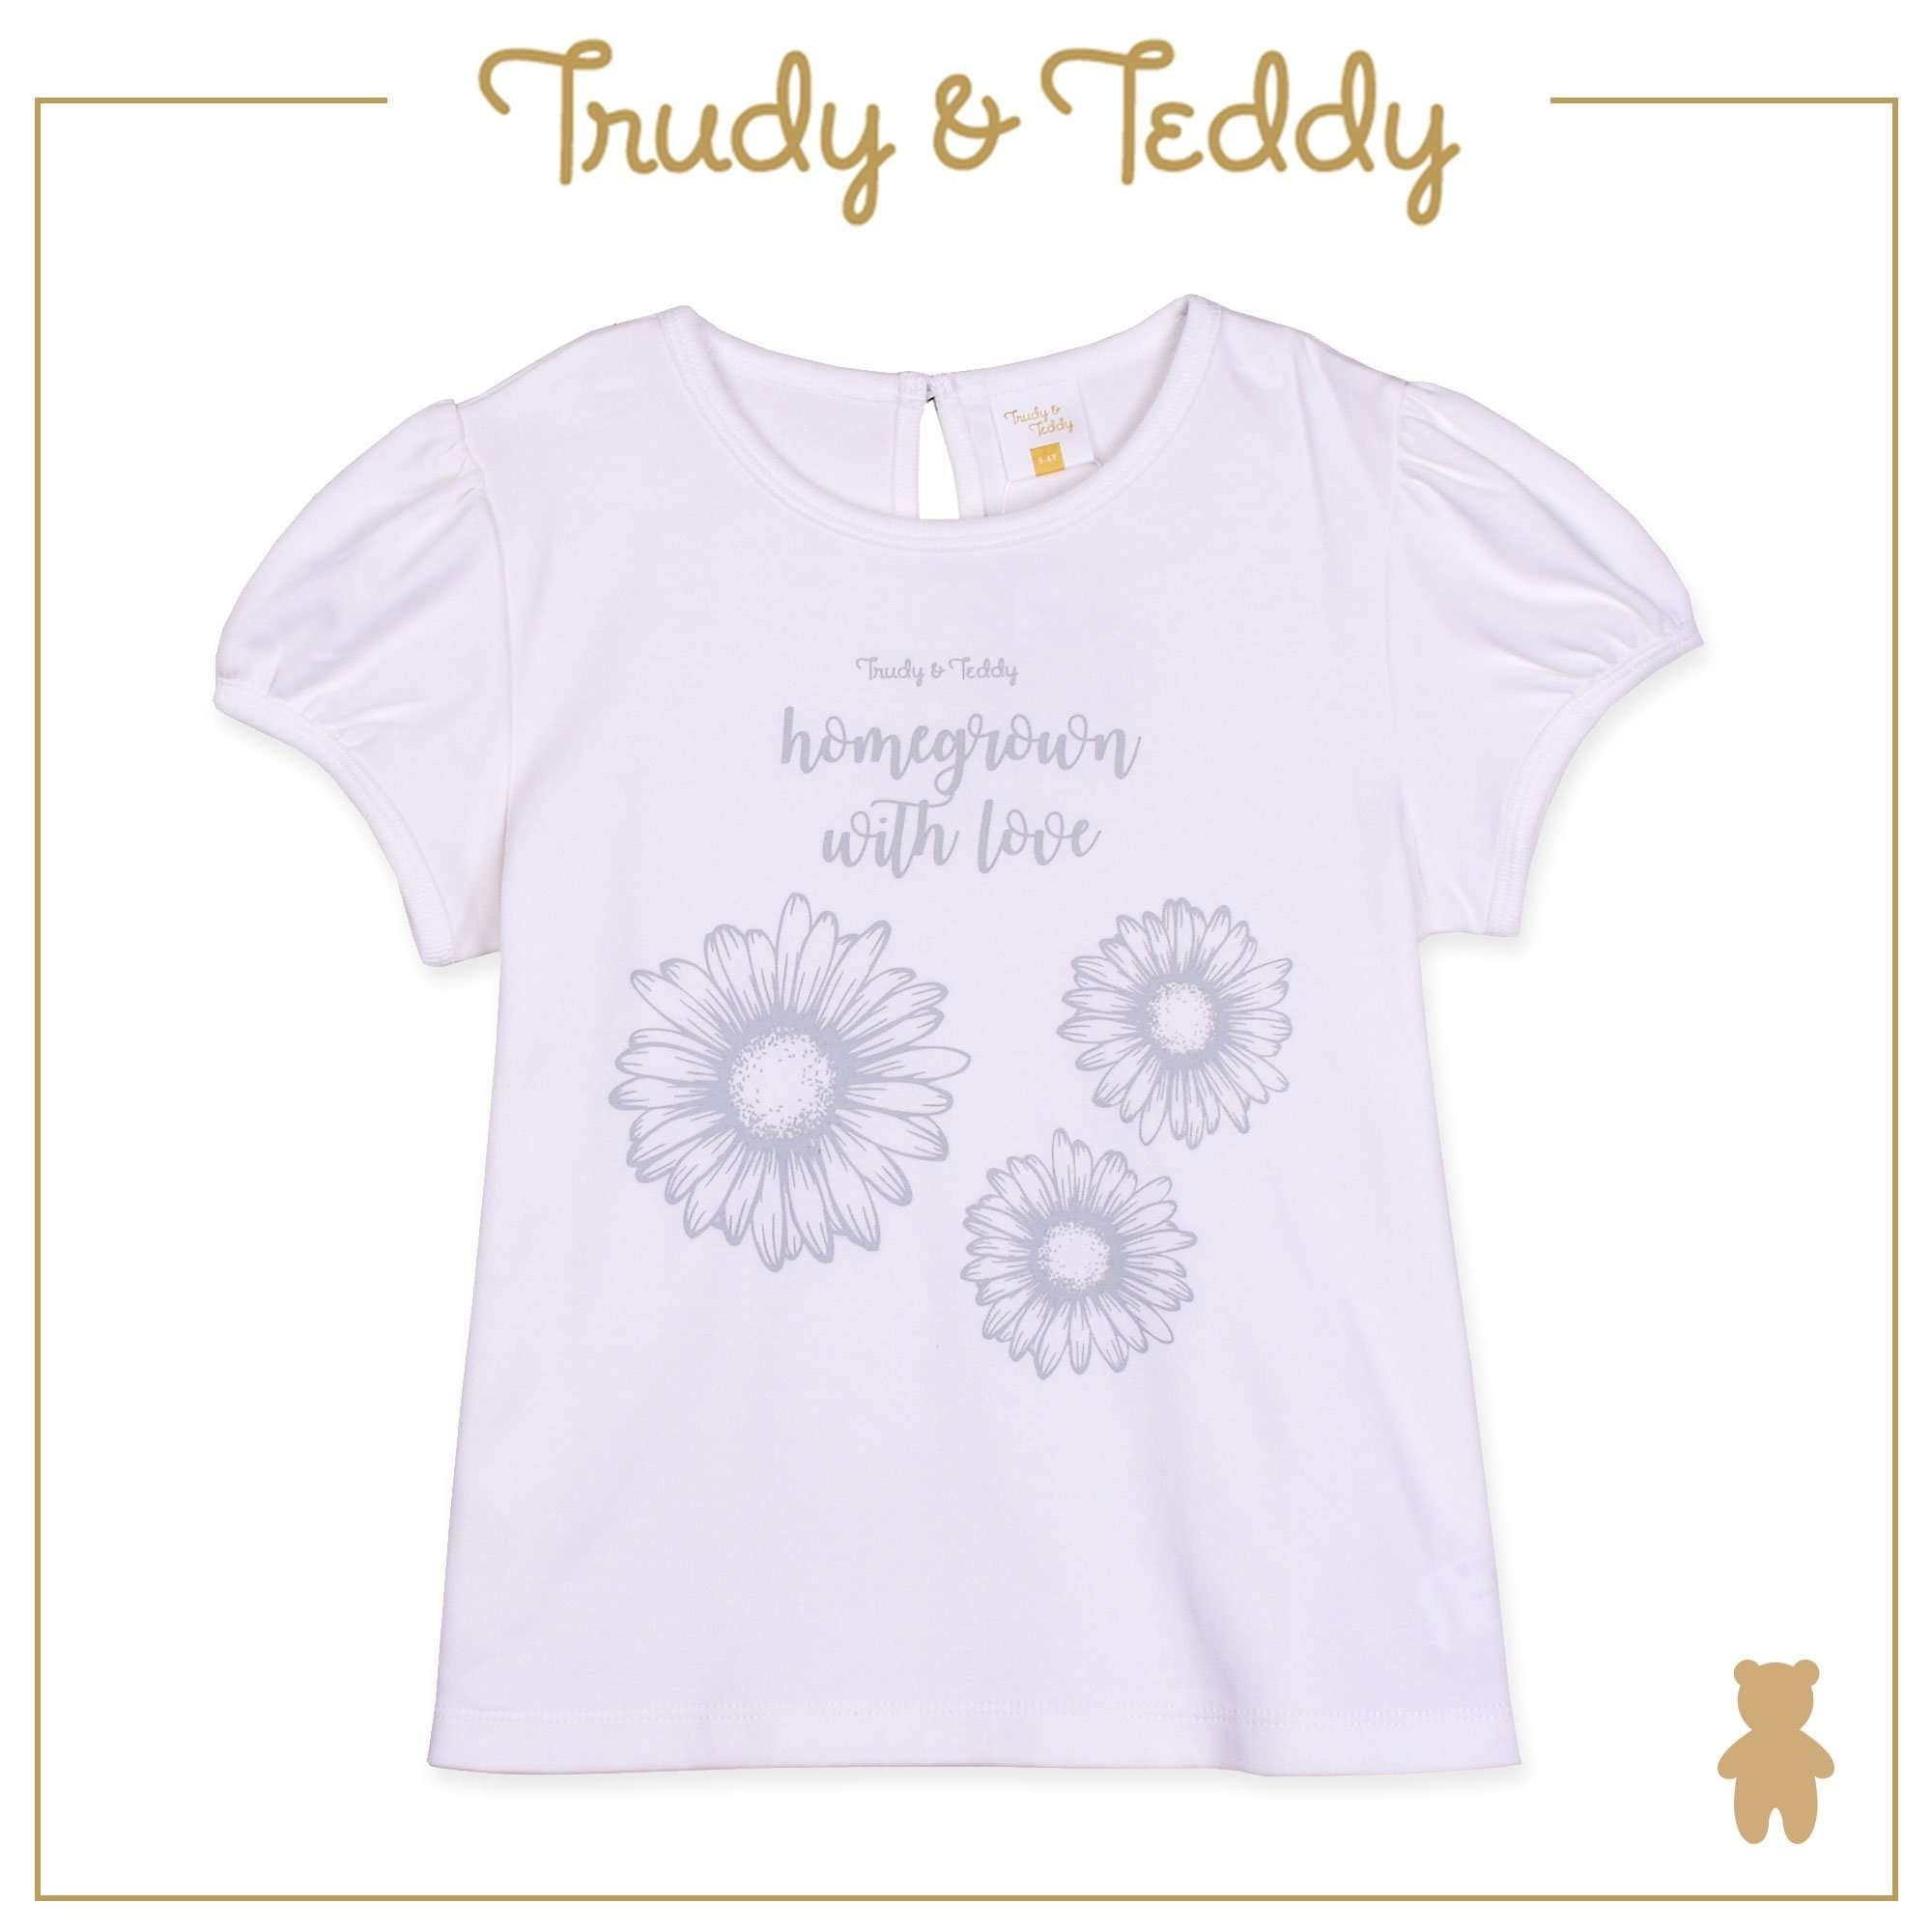 Trudy & Teddy Baby to Kid Girl Short Sleeve Long Pants Suit - Brown T925103-4118-B5 : Buy Trudy & Teddy online at CMG.MY